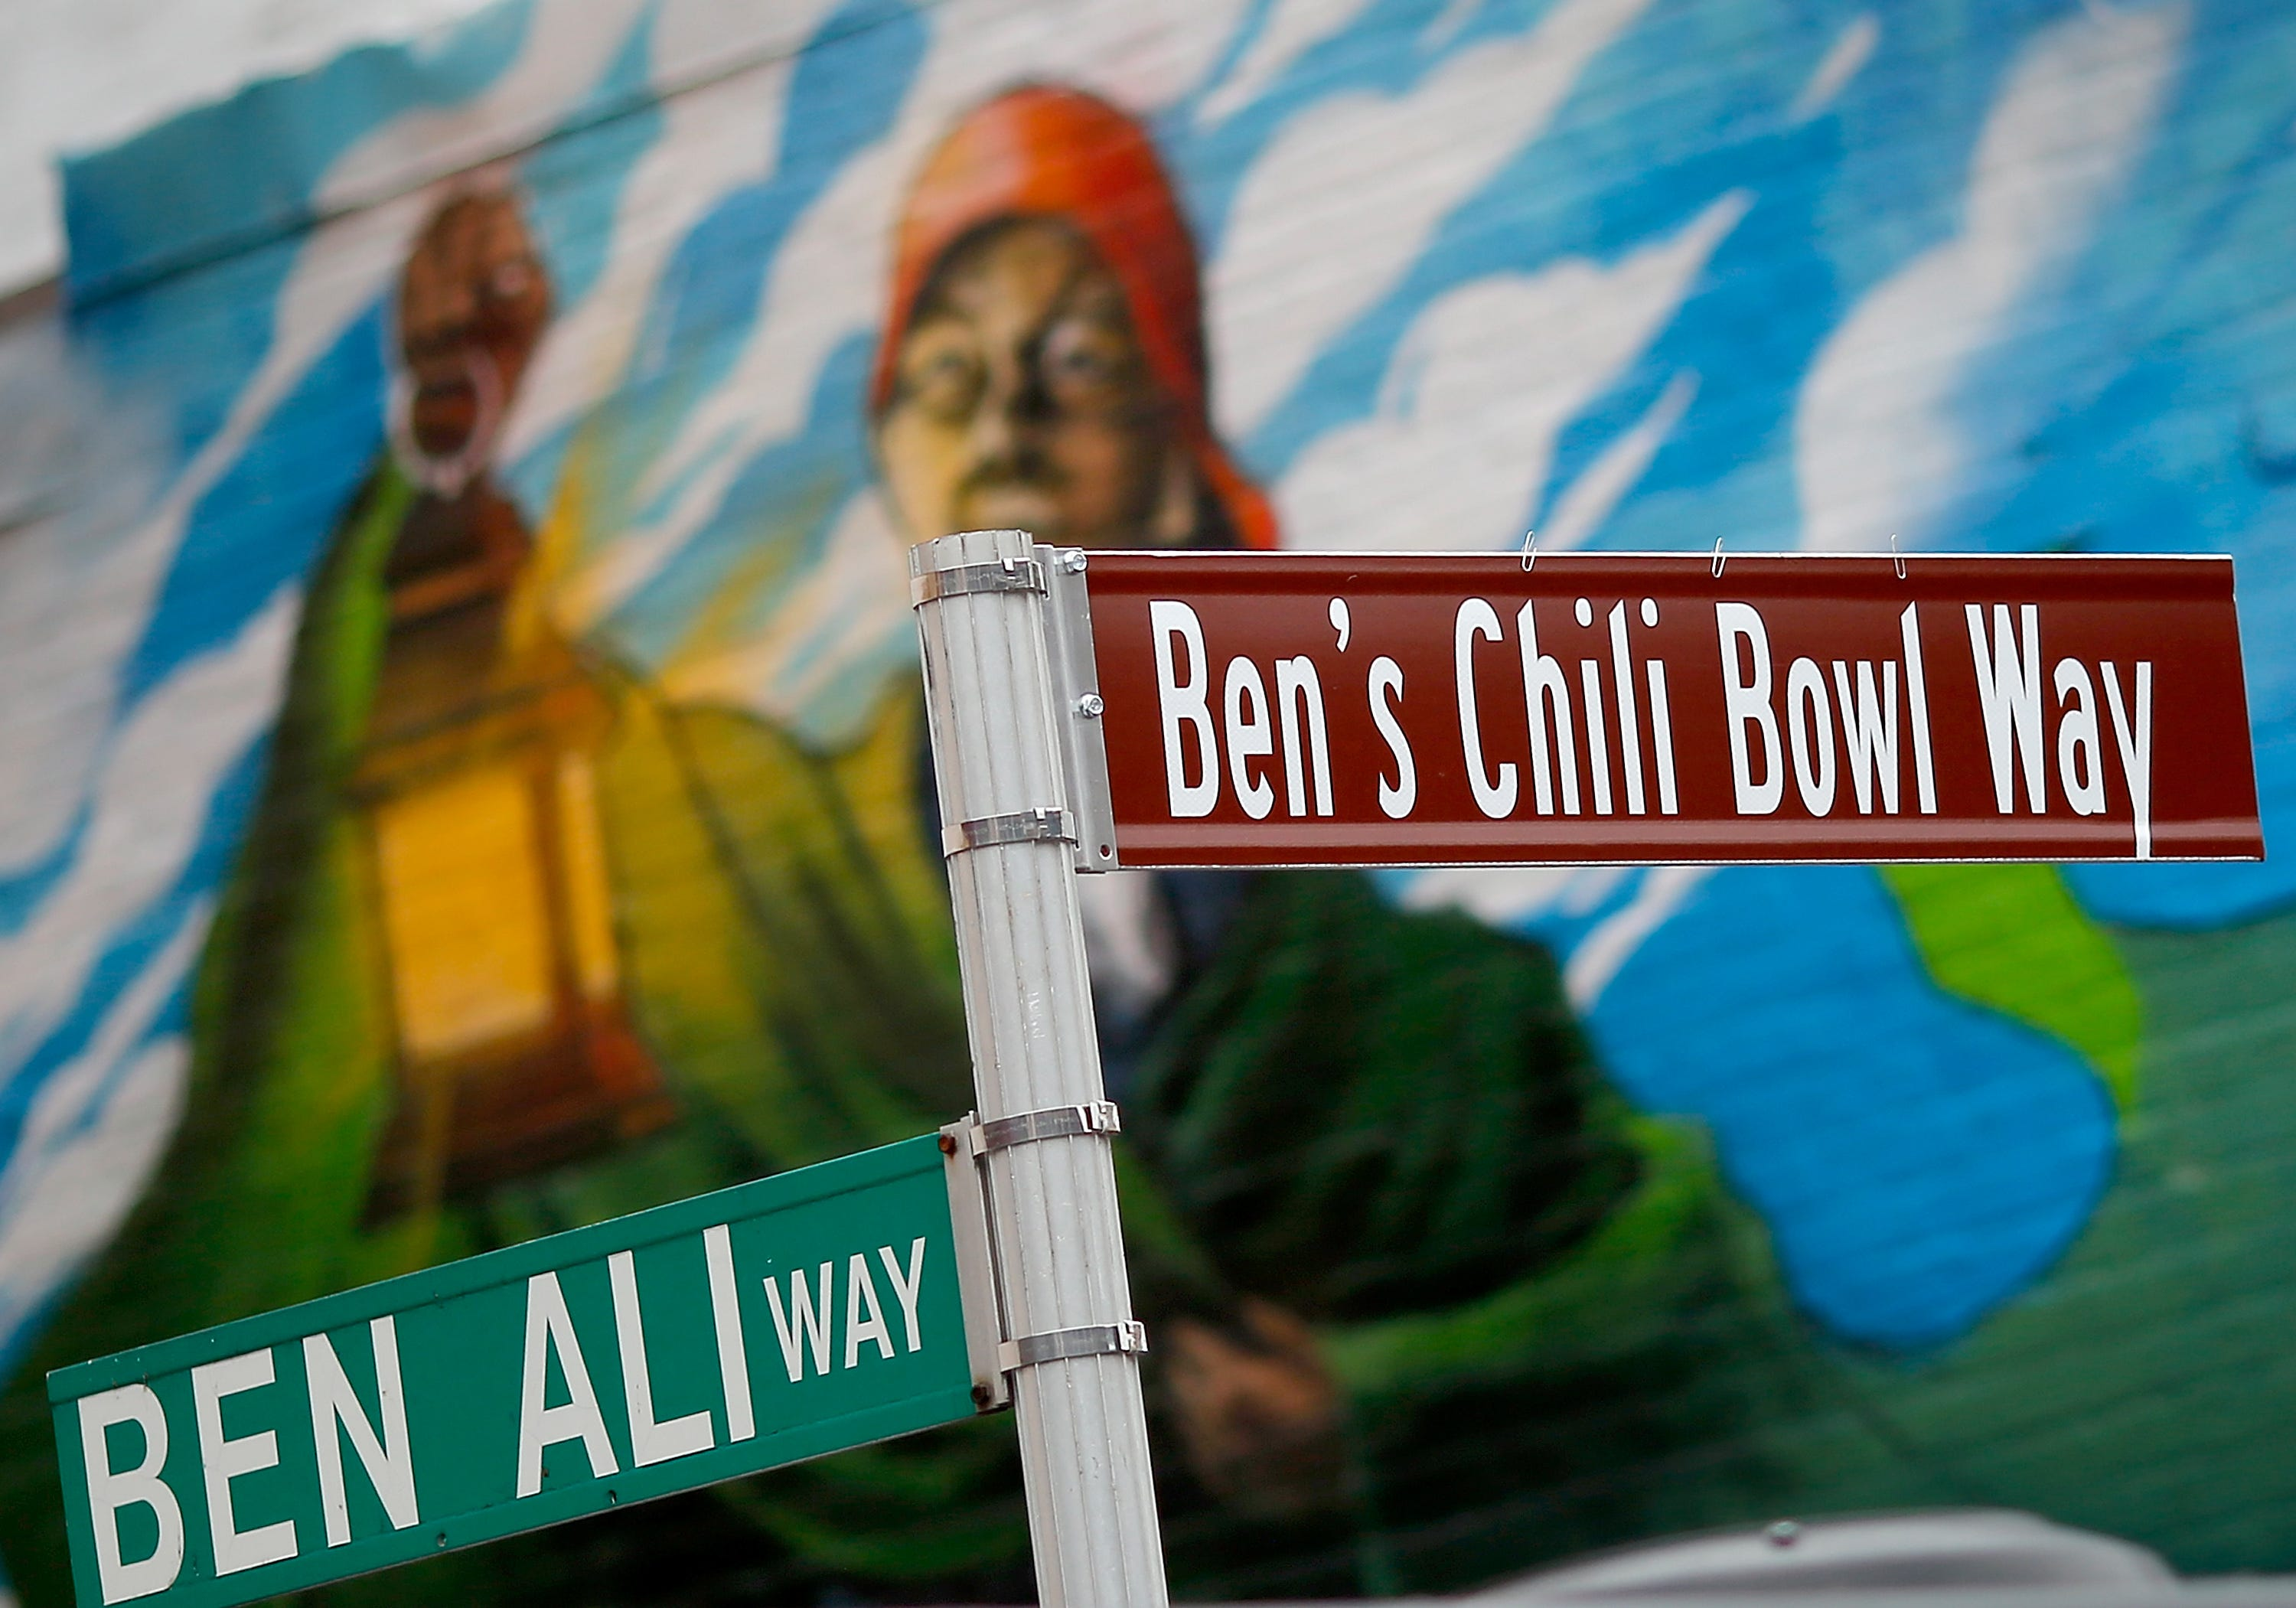 A new street sign for Ben's Chili Bowl Way was unveiled as Washington D.C. residents enjoyed the 60th birthday block party for area landmark Ben's Chili Bowl Aug. 22, 2018 in Washington, DC. Ben's Chili Bowl was opened in 1958 by Virginia Ali and her husband Ben. Ben's original location is a neighborhood staple where such luminaries as Ella Fitzgerald, Nat King Cole, Martin Luther King, Jr., and former President Barack Obama have eaten.